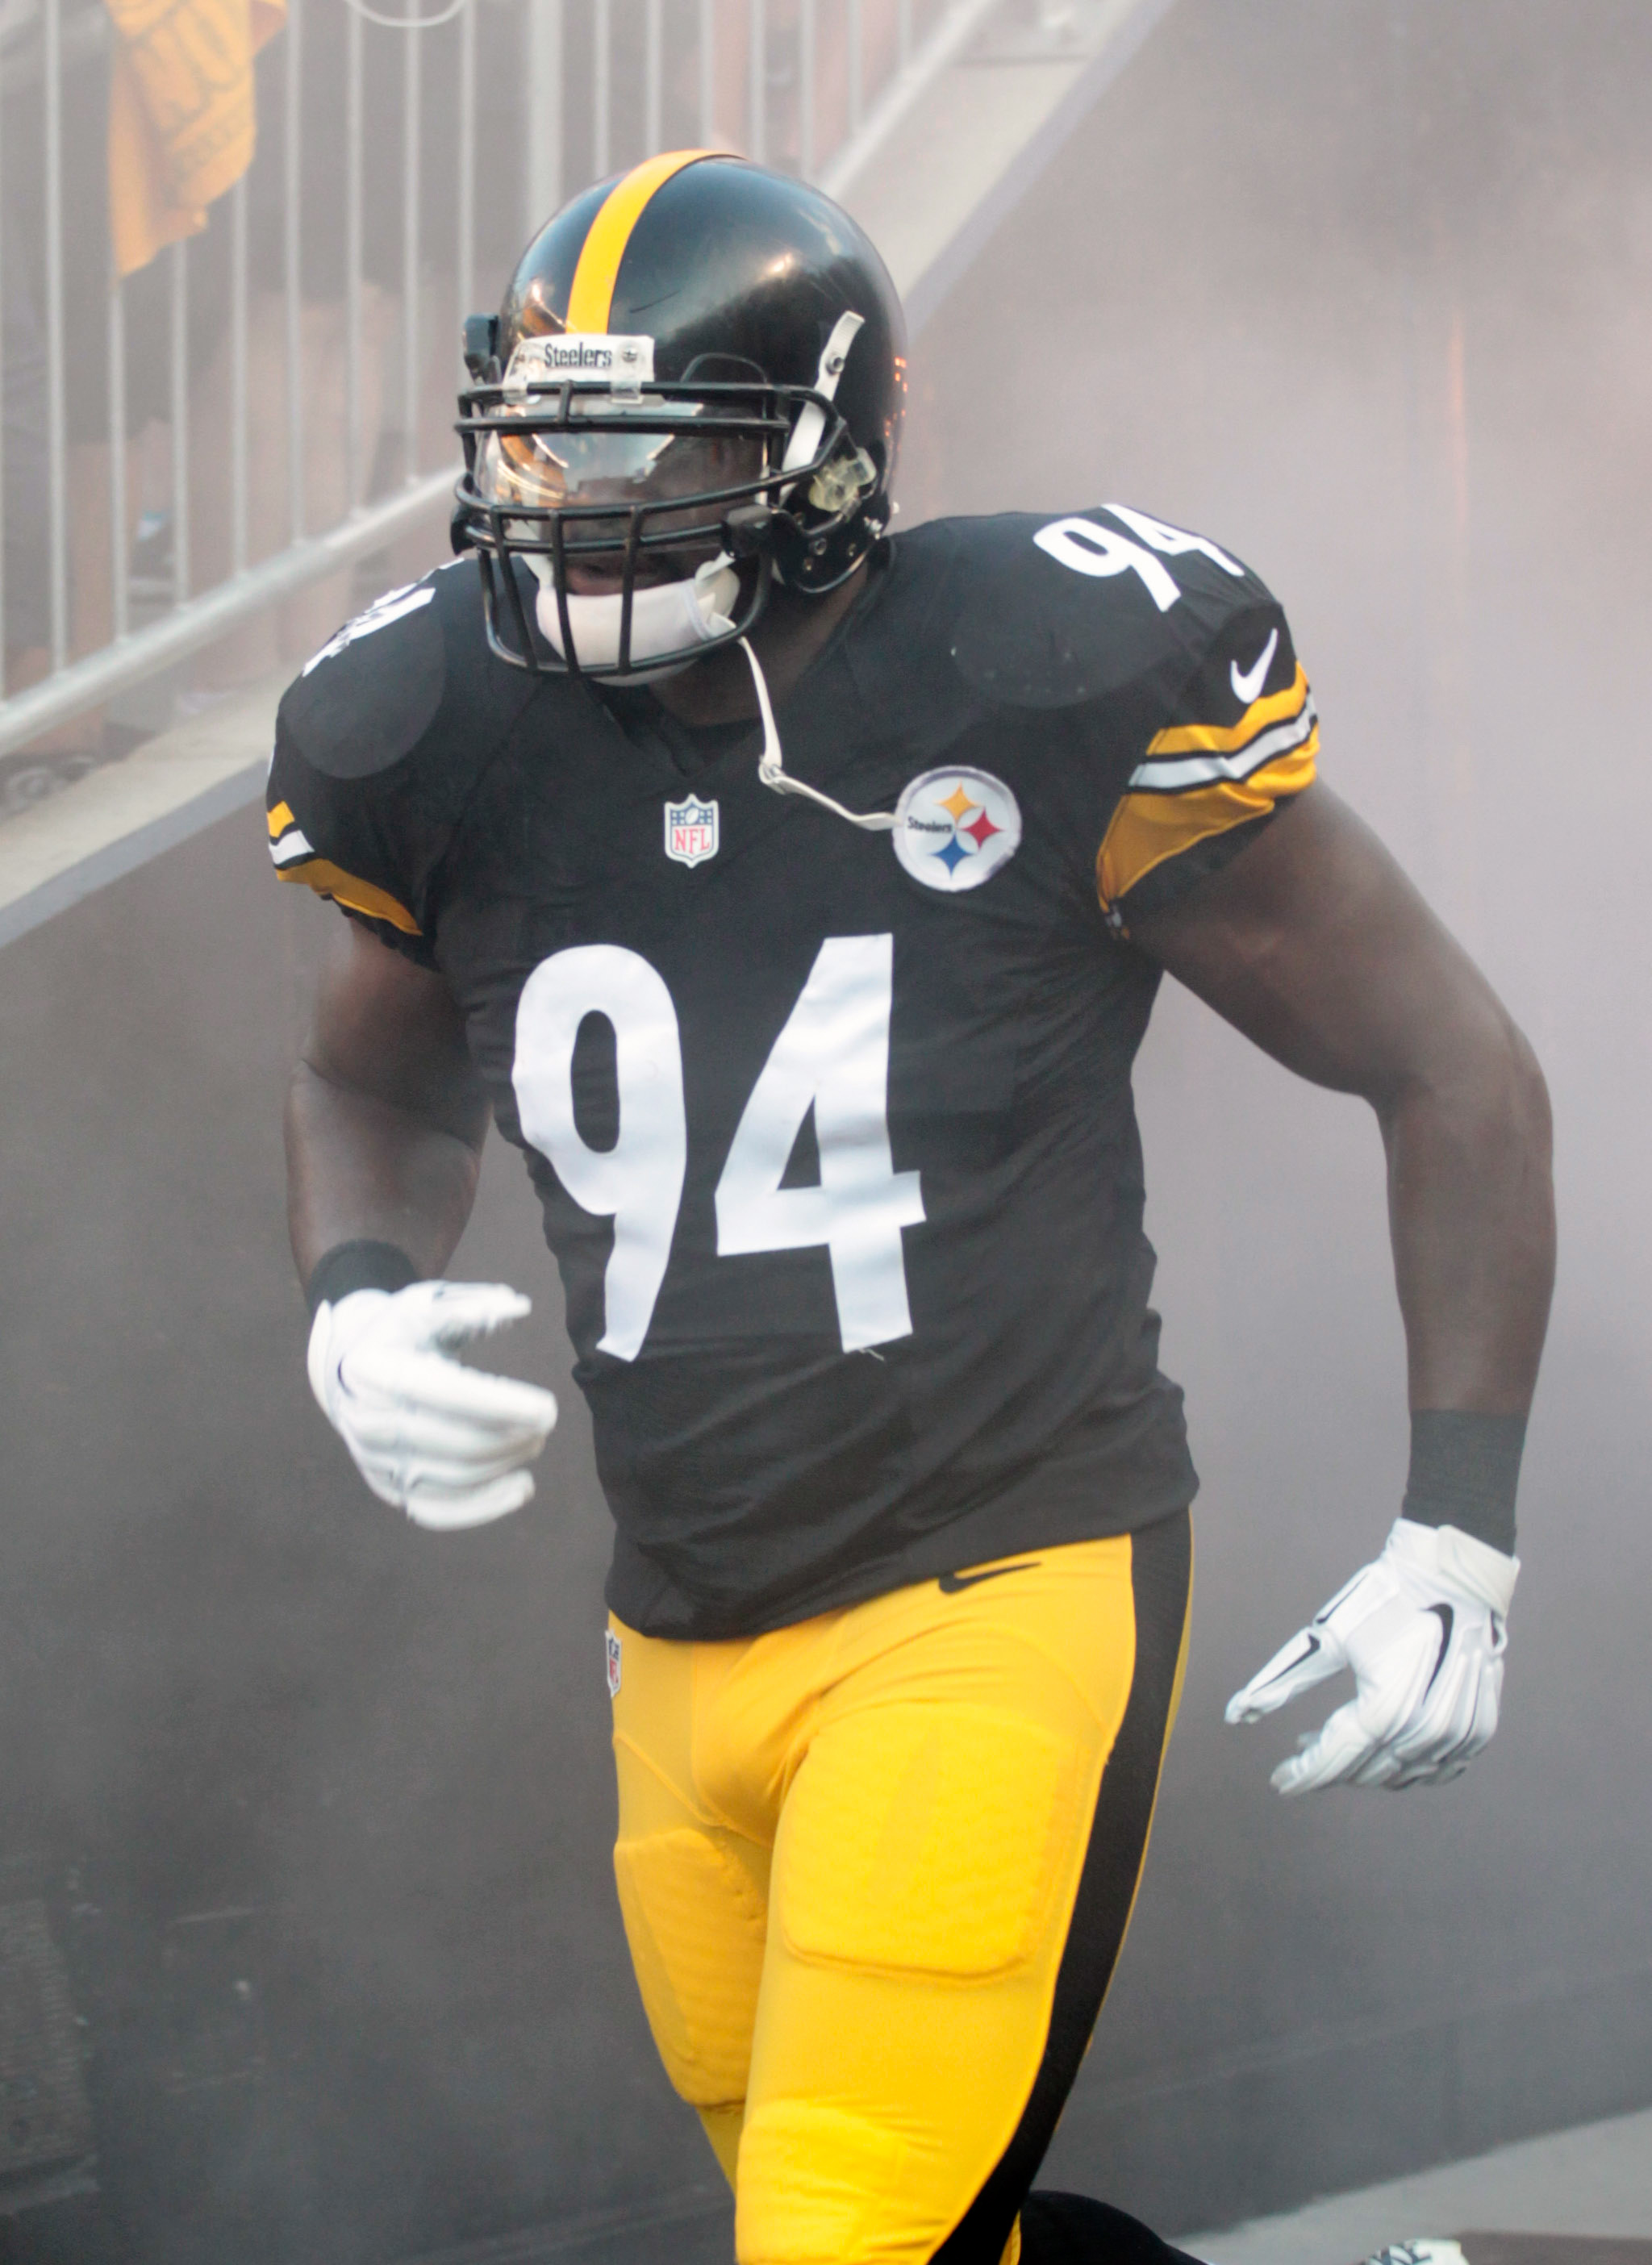 No Extension For Steelers' Lawrence Timmons